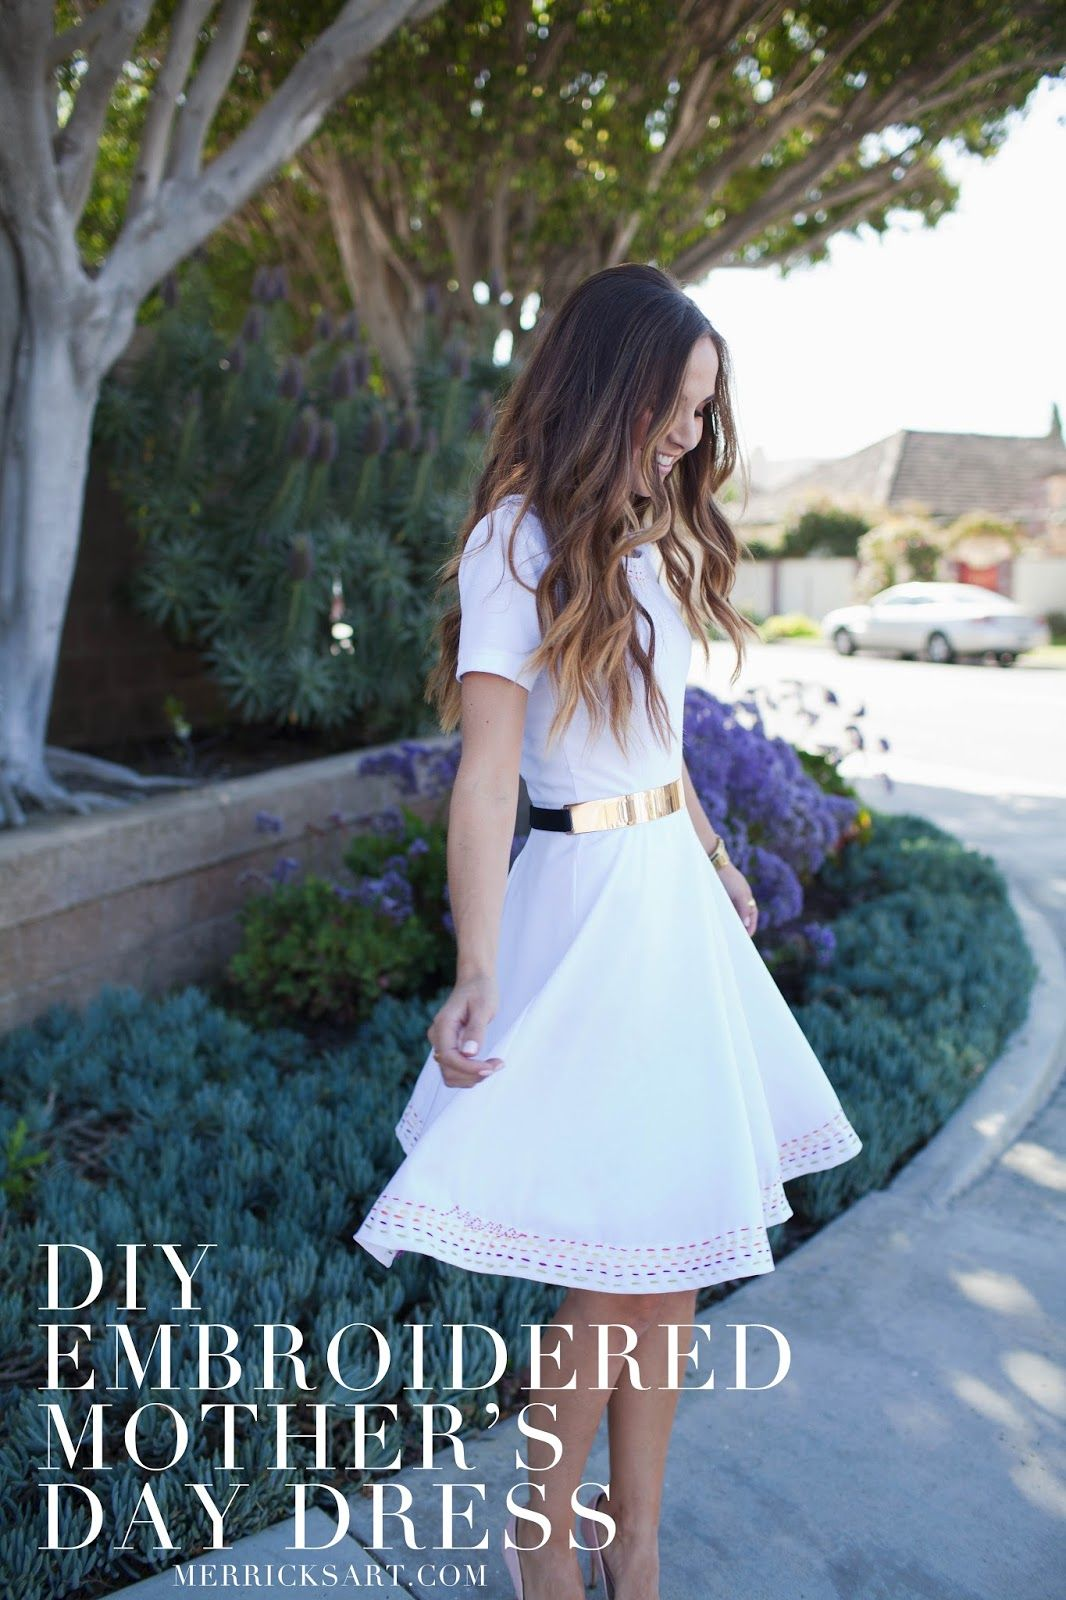 DIY FRIDAY: EMBROIDERED MOTHER'S DAY DRESS TUTORIAL